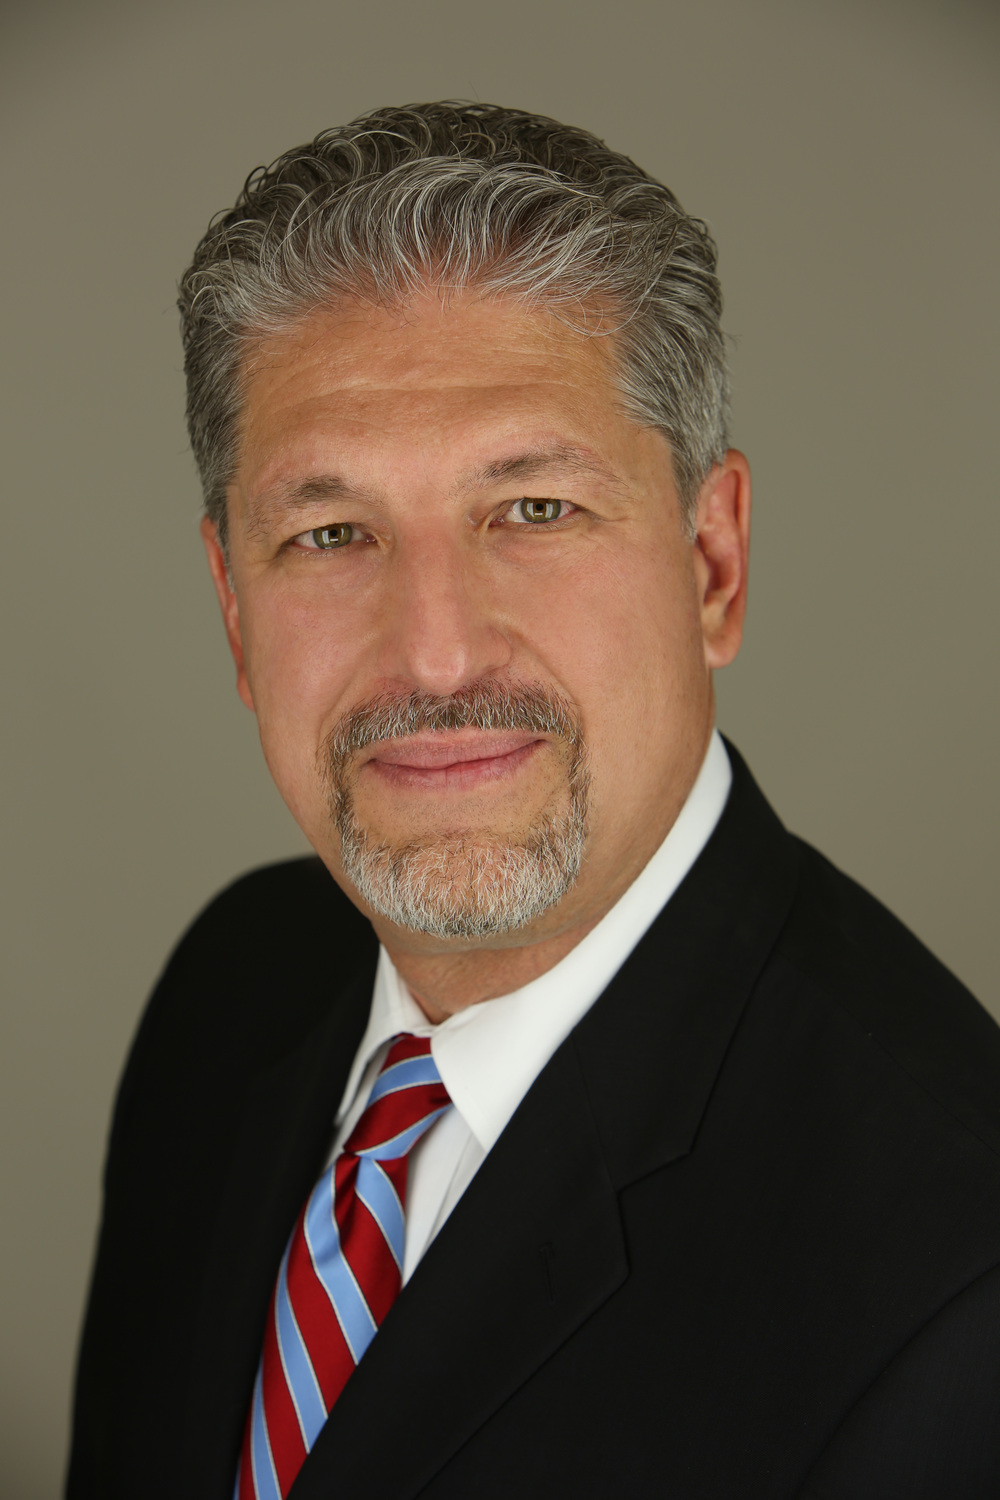 Mark Svorinic, Governet president